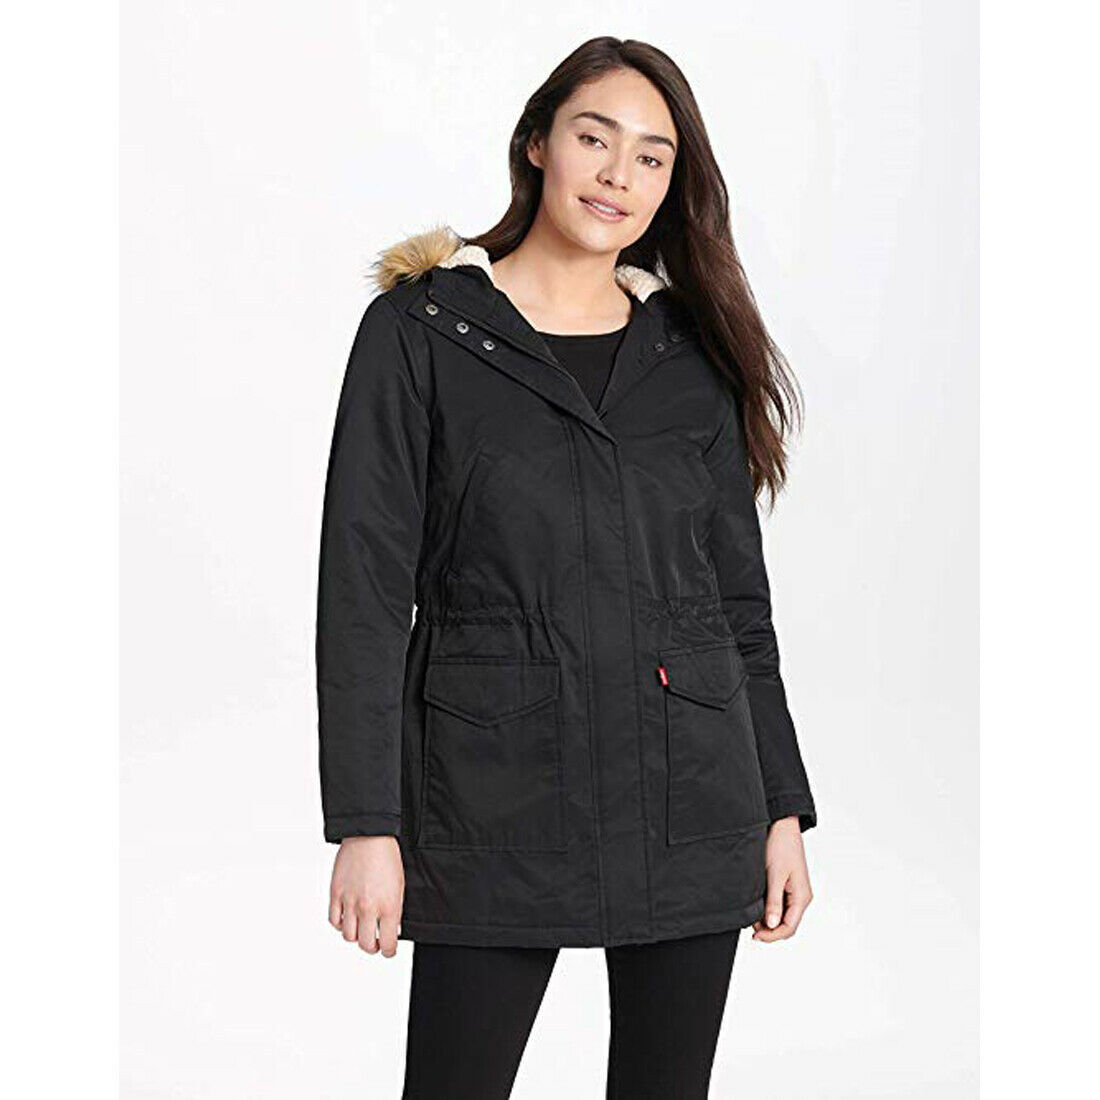 Primary image for Levi's Women's Performance Sherpa Lined Midlength Parka Jacket, Black, X-Large